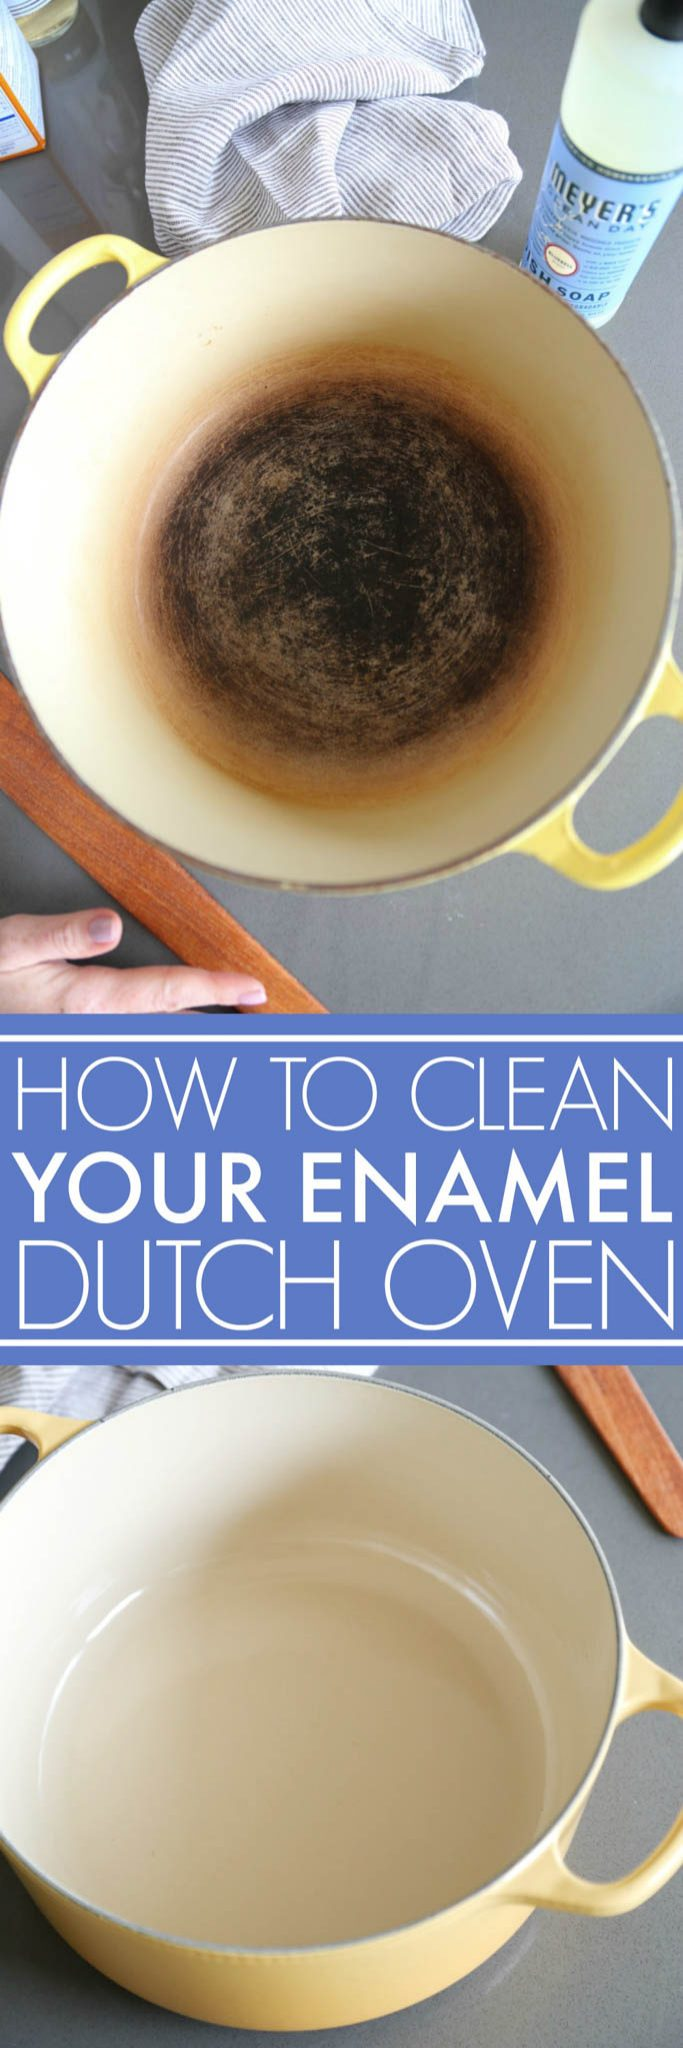 how to clean an enameled cast iron dutch oven platings pairings. Black Bedroom Furniture Sets. Home Design Ideas